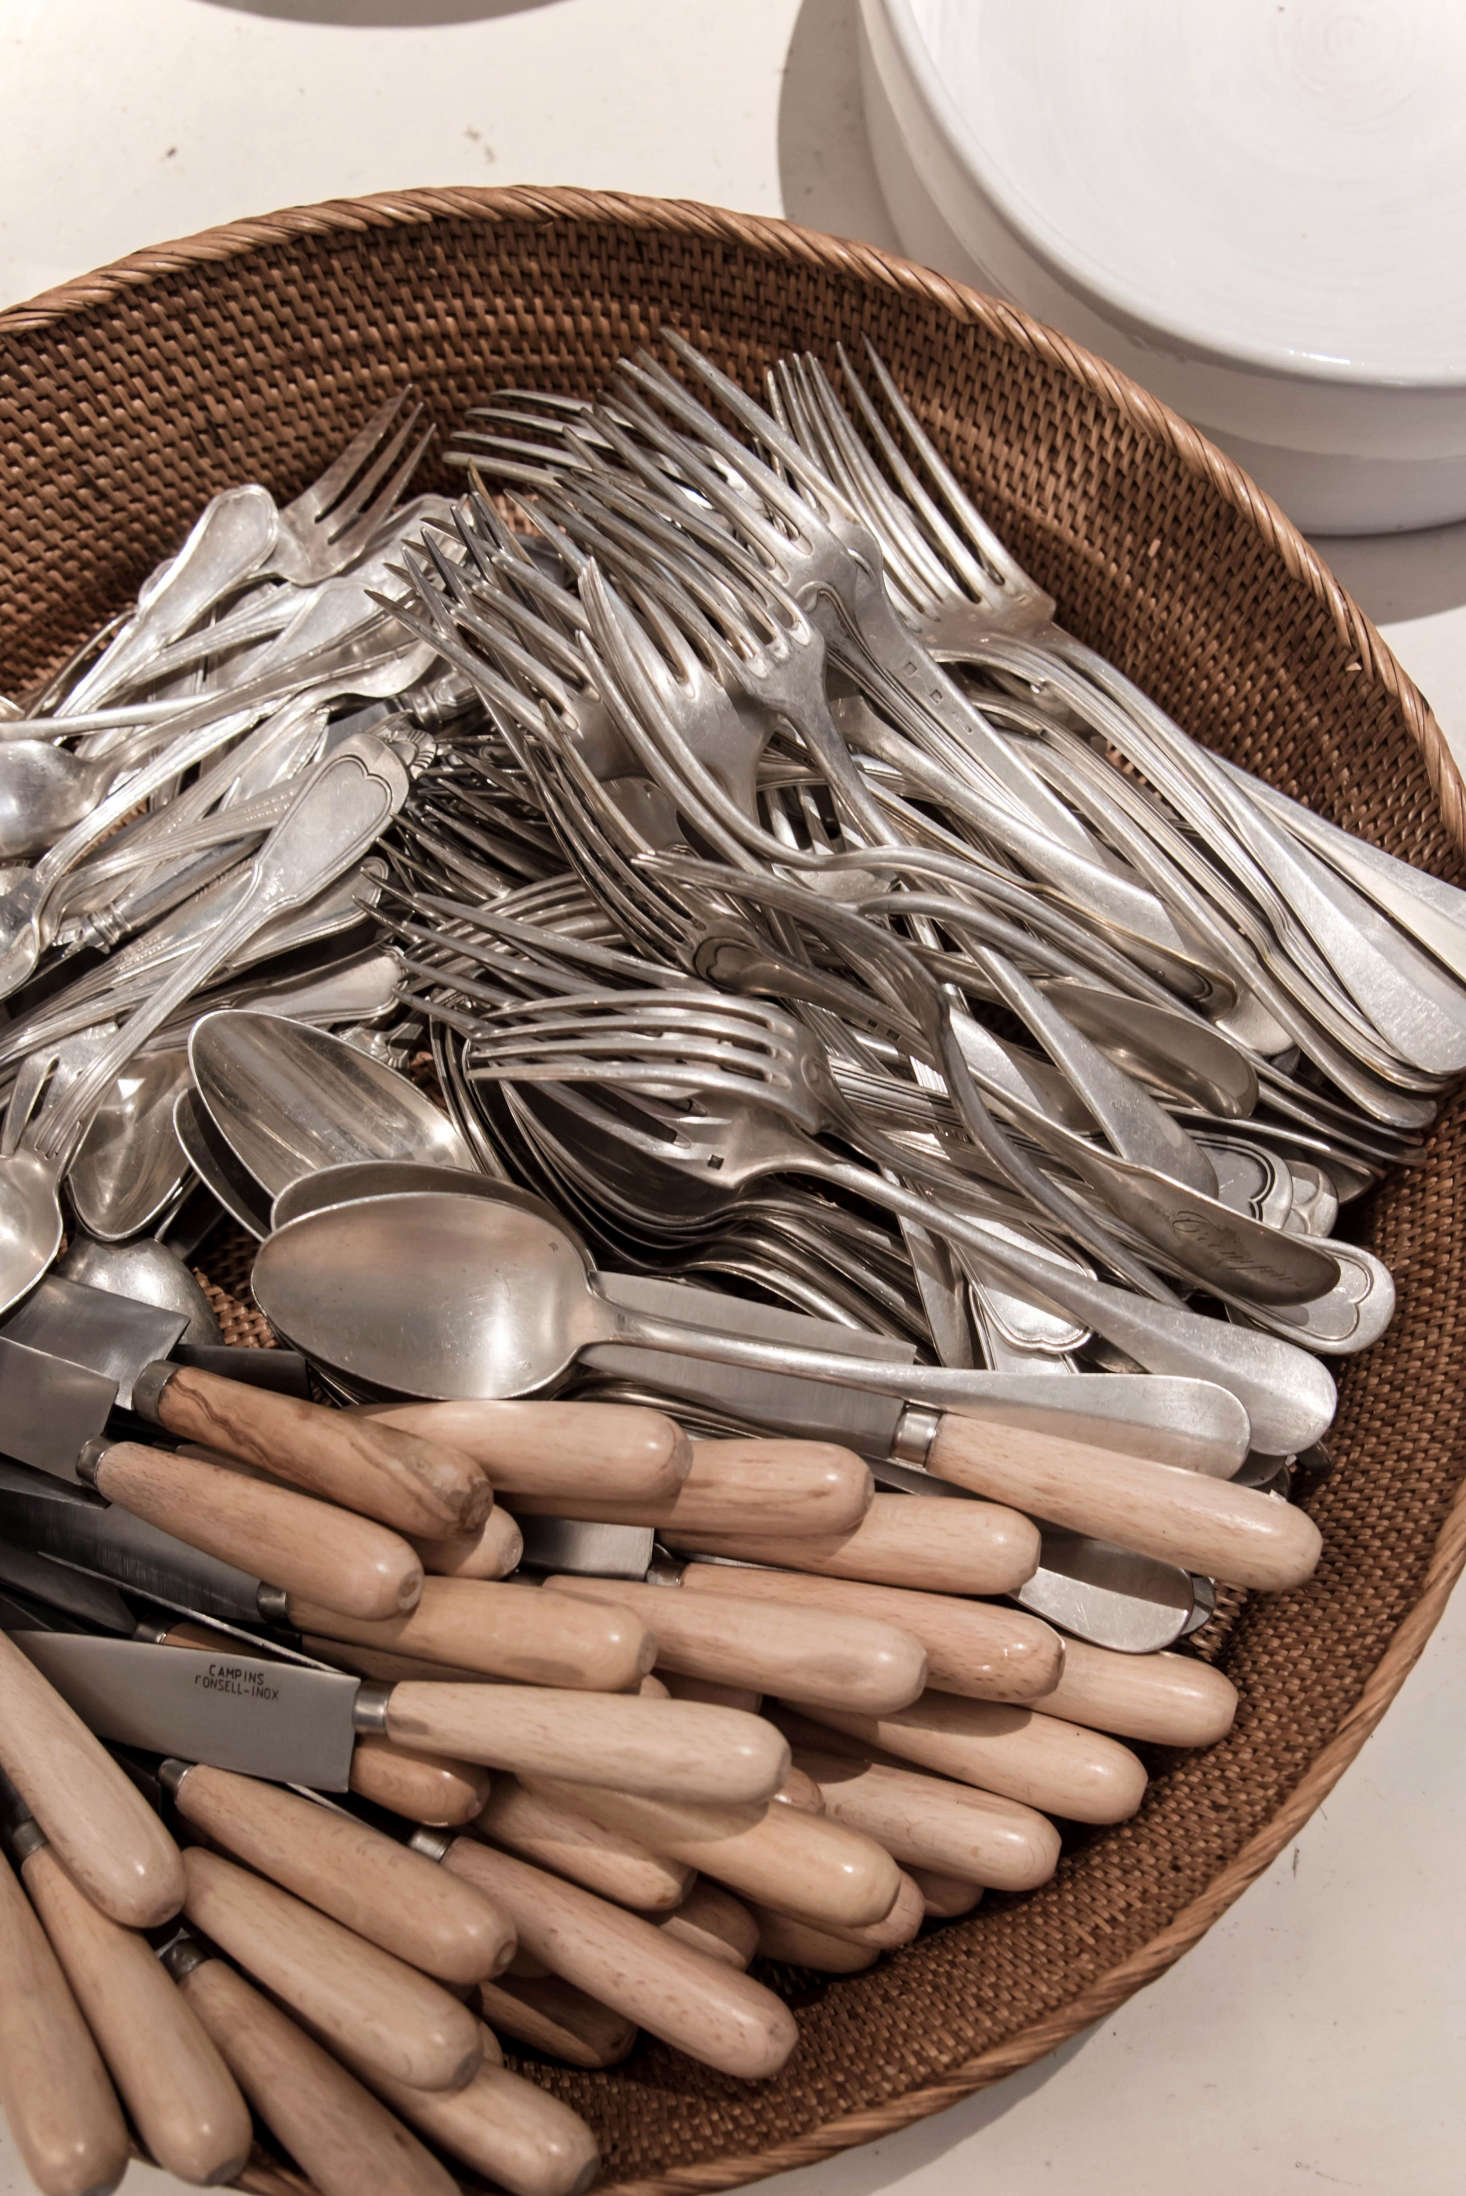 Seek out beautiful flatware for daily use. Here, knives handmade by an artisan in Mallorca mingle with mix-and-match silver.